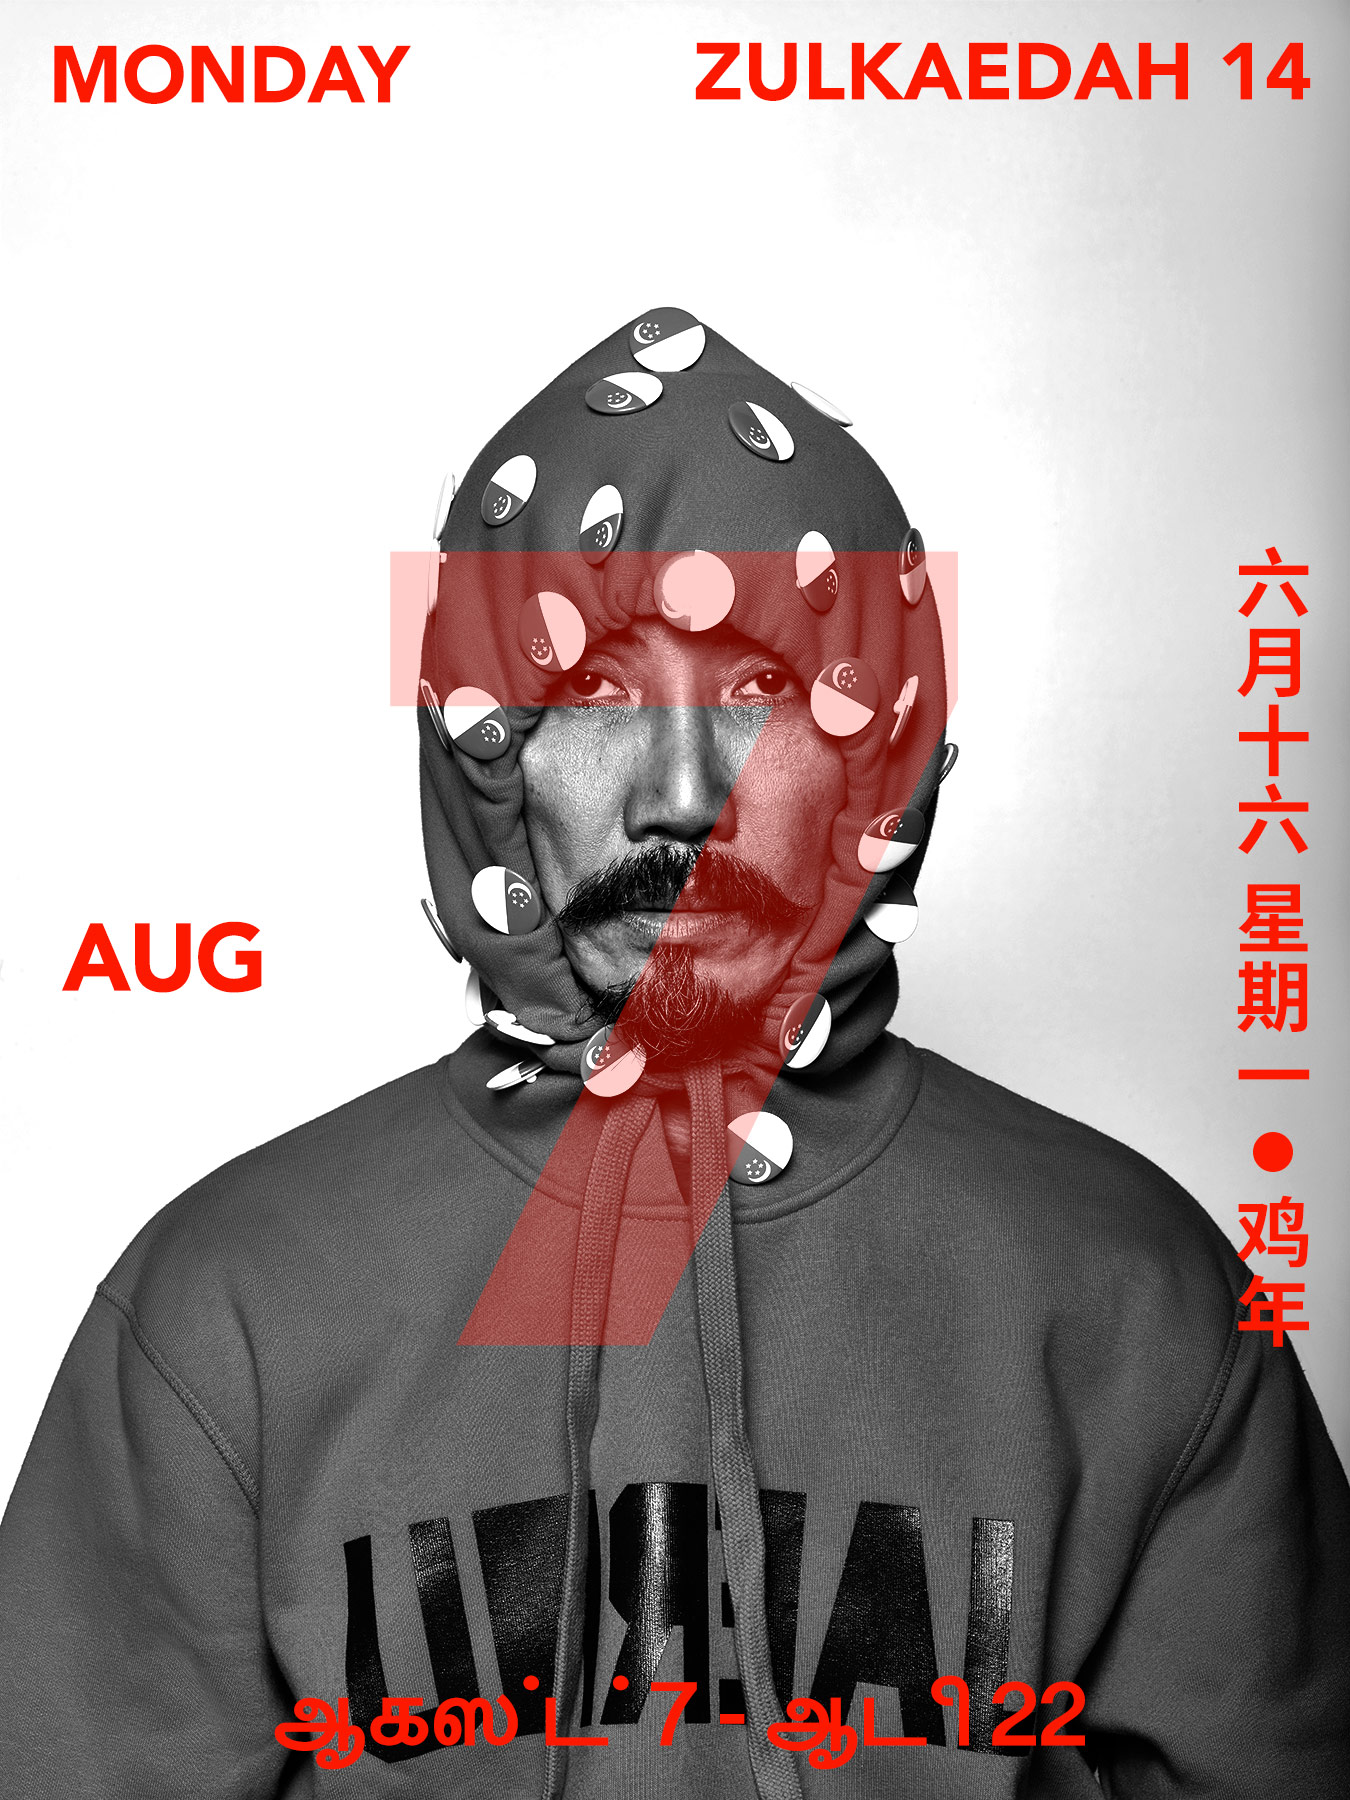 7 Aug 2017 Derong is wearing a red hoodie with Singapore flag pins all over the hood